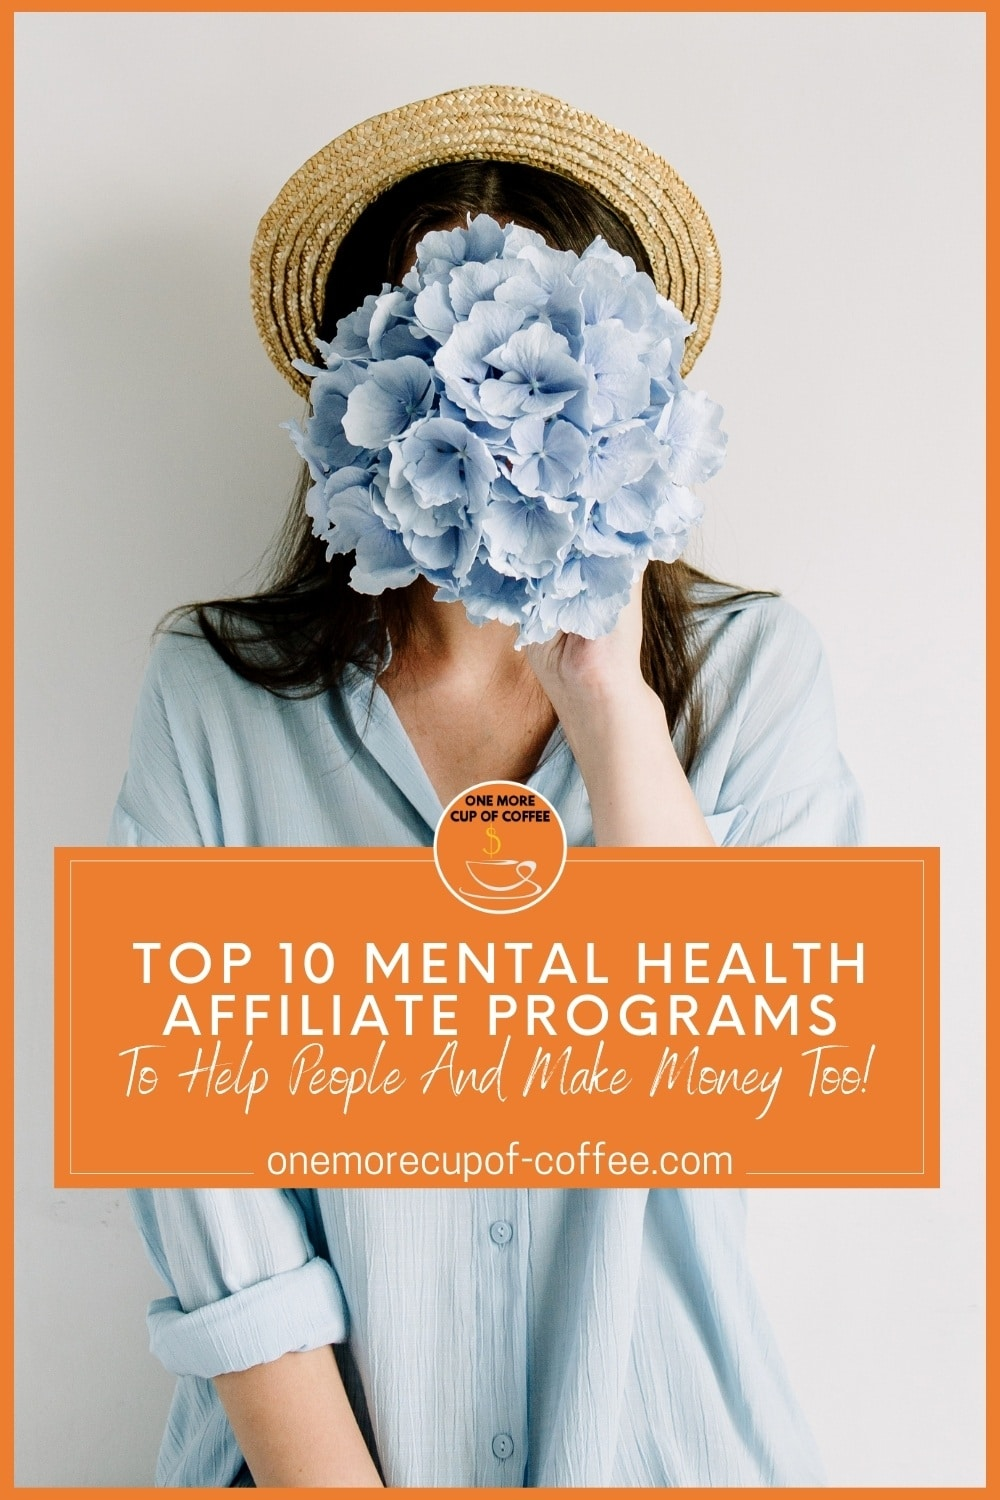 image of woman with blue oversized shirt, a hat, holding a bunch of blue flowers to her face; with text overlay in orange banner